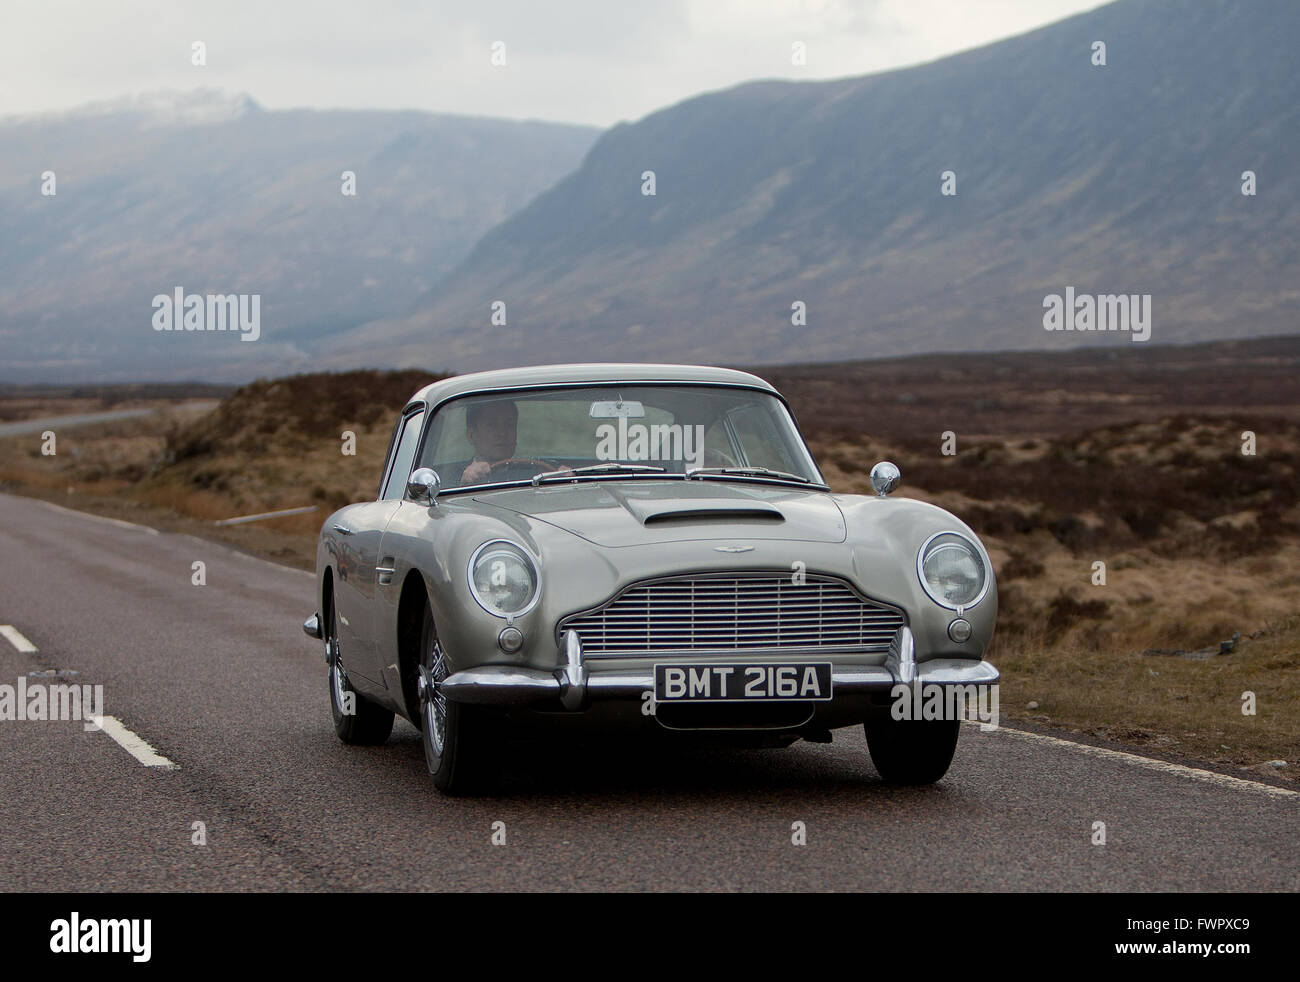 The Aston Martin DB4 Used In The Filming Of The James Bond Film, Skyfall In  Glencoe, Scotland.